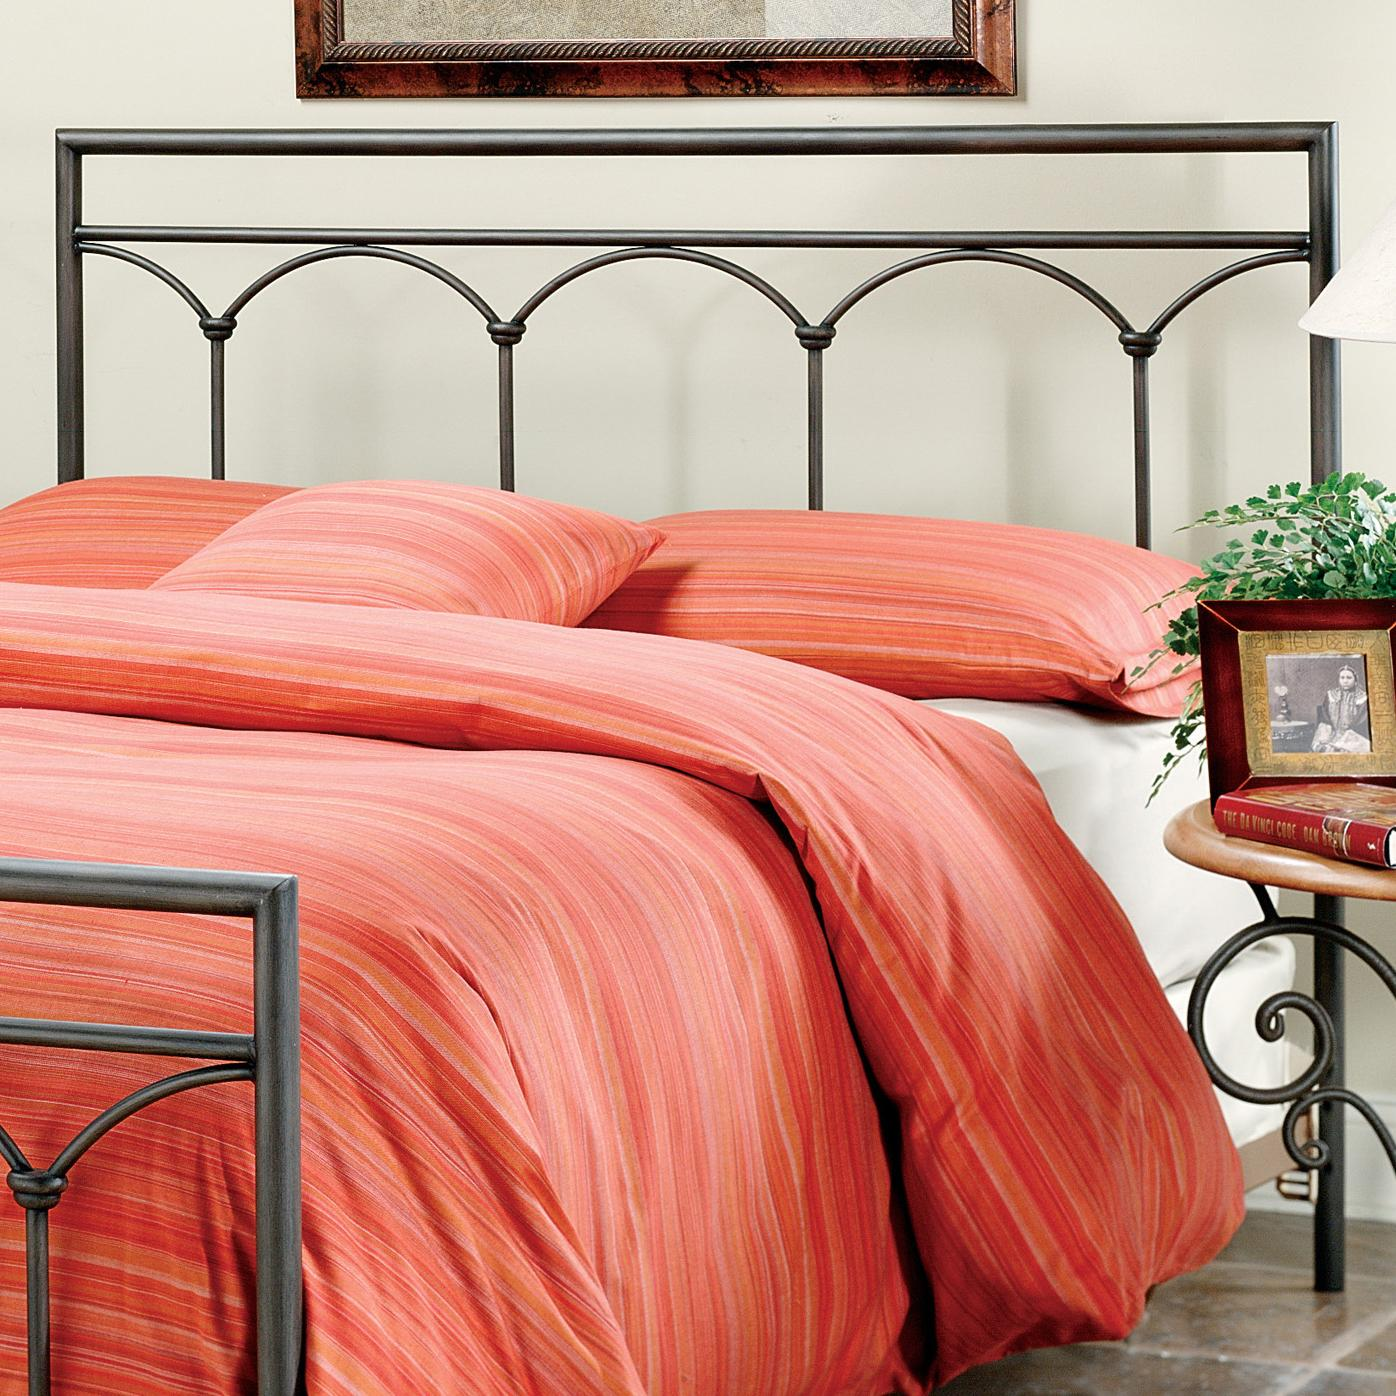 Hillsdale Metal Beds Queen McKenzie Headboard - Item Number: 1092-570